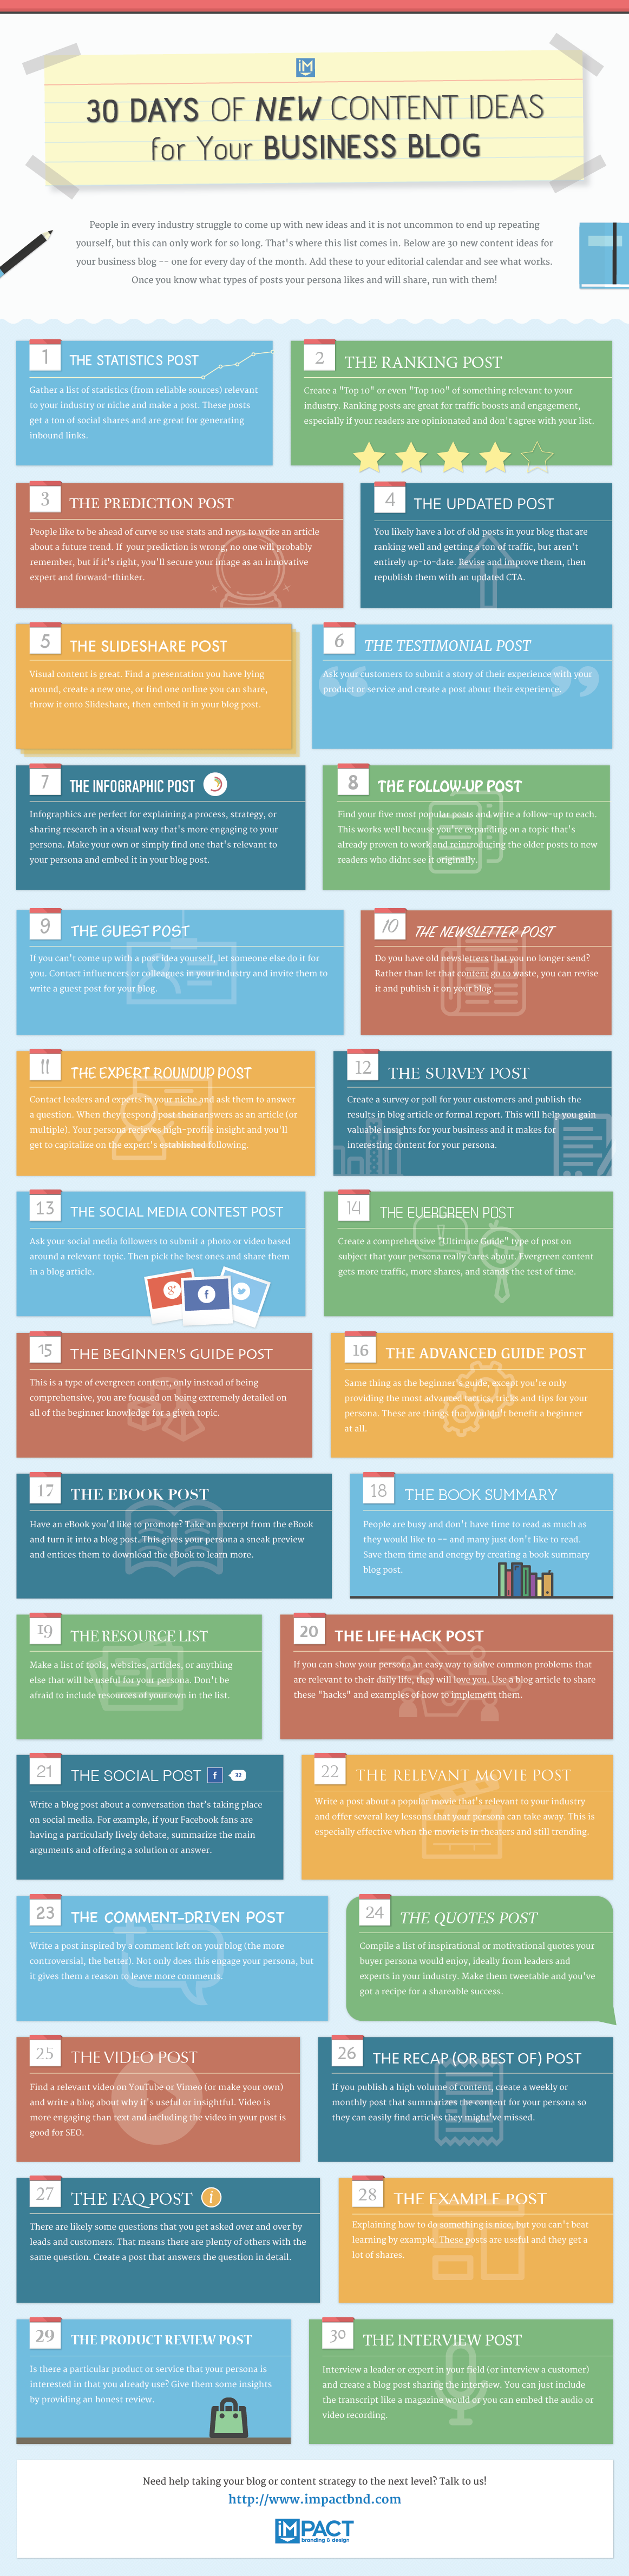 30_Days_of_New_Content_Ideas_for_Your_Business_Blogv5.png